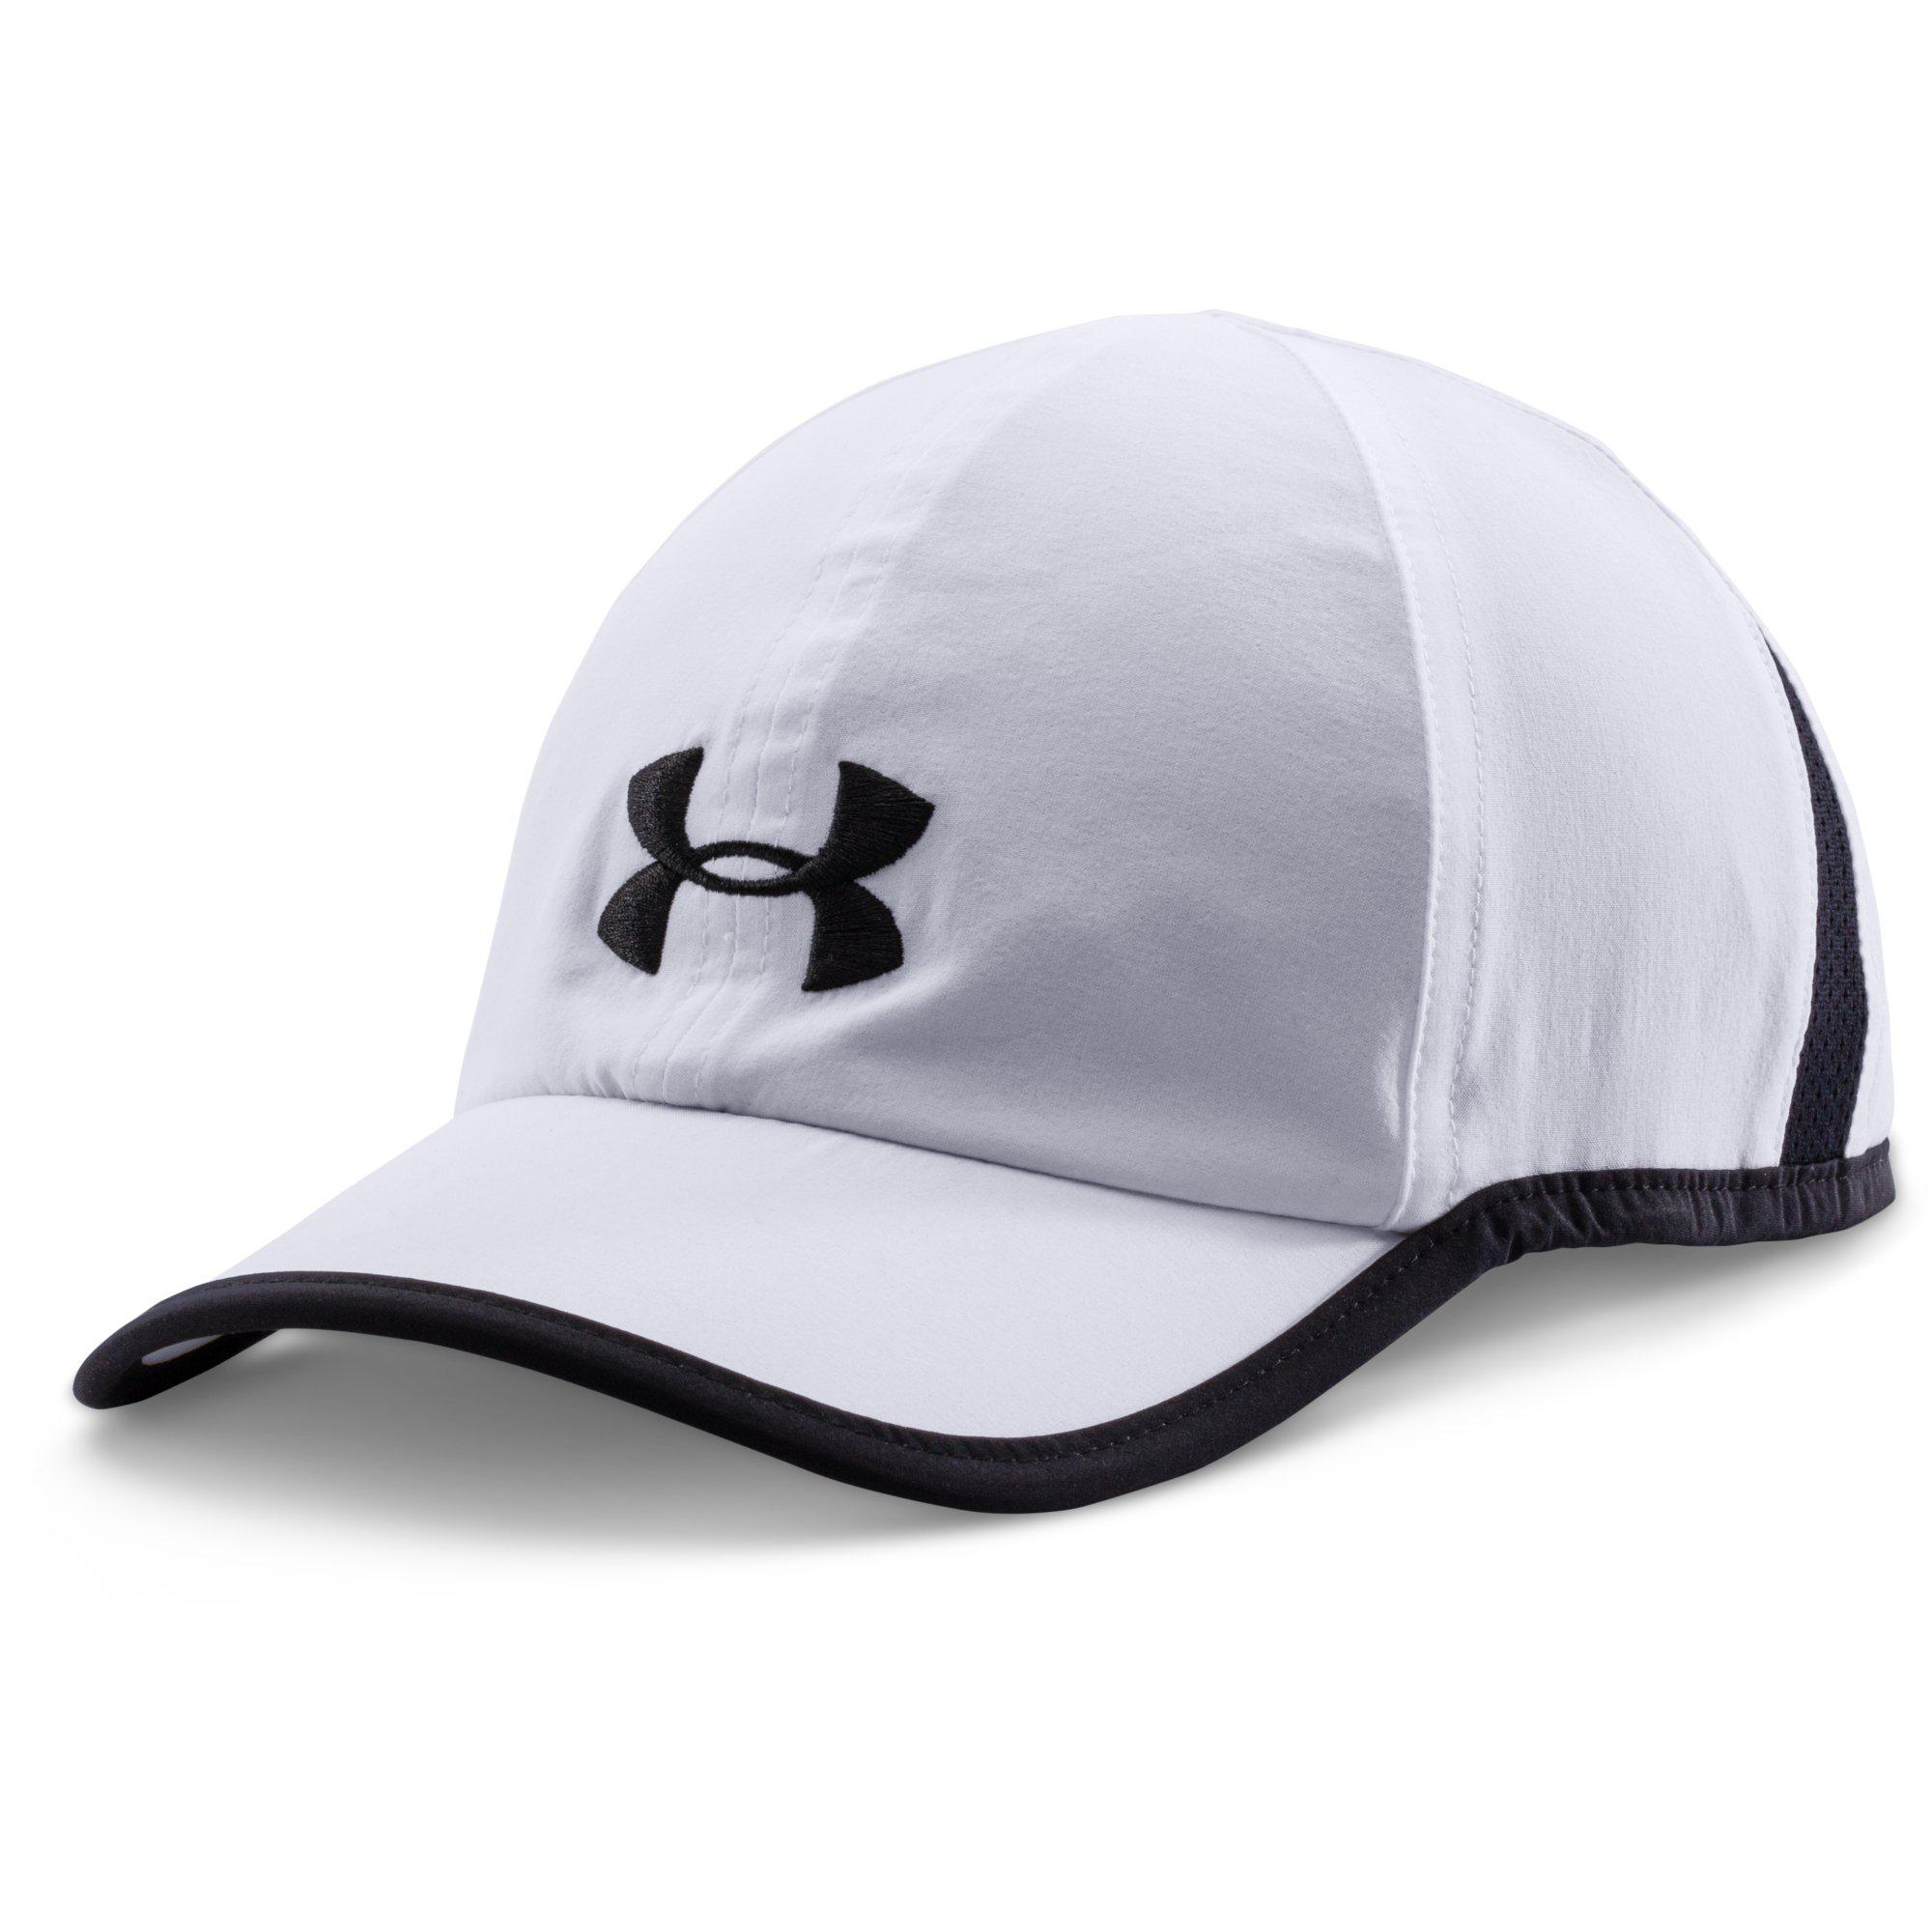 White Under Sink Bathroom Cabinet Undersink Storage: Under Armour Shadow 2.0 Cap